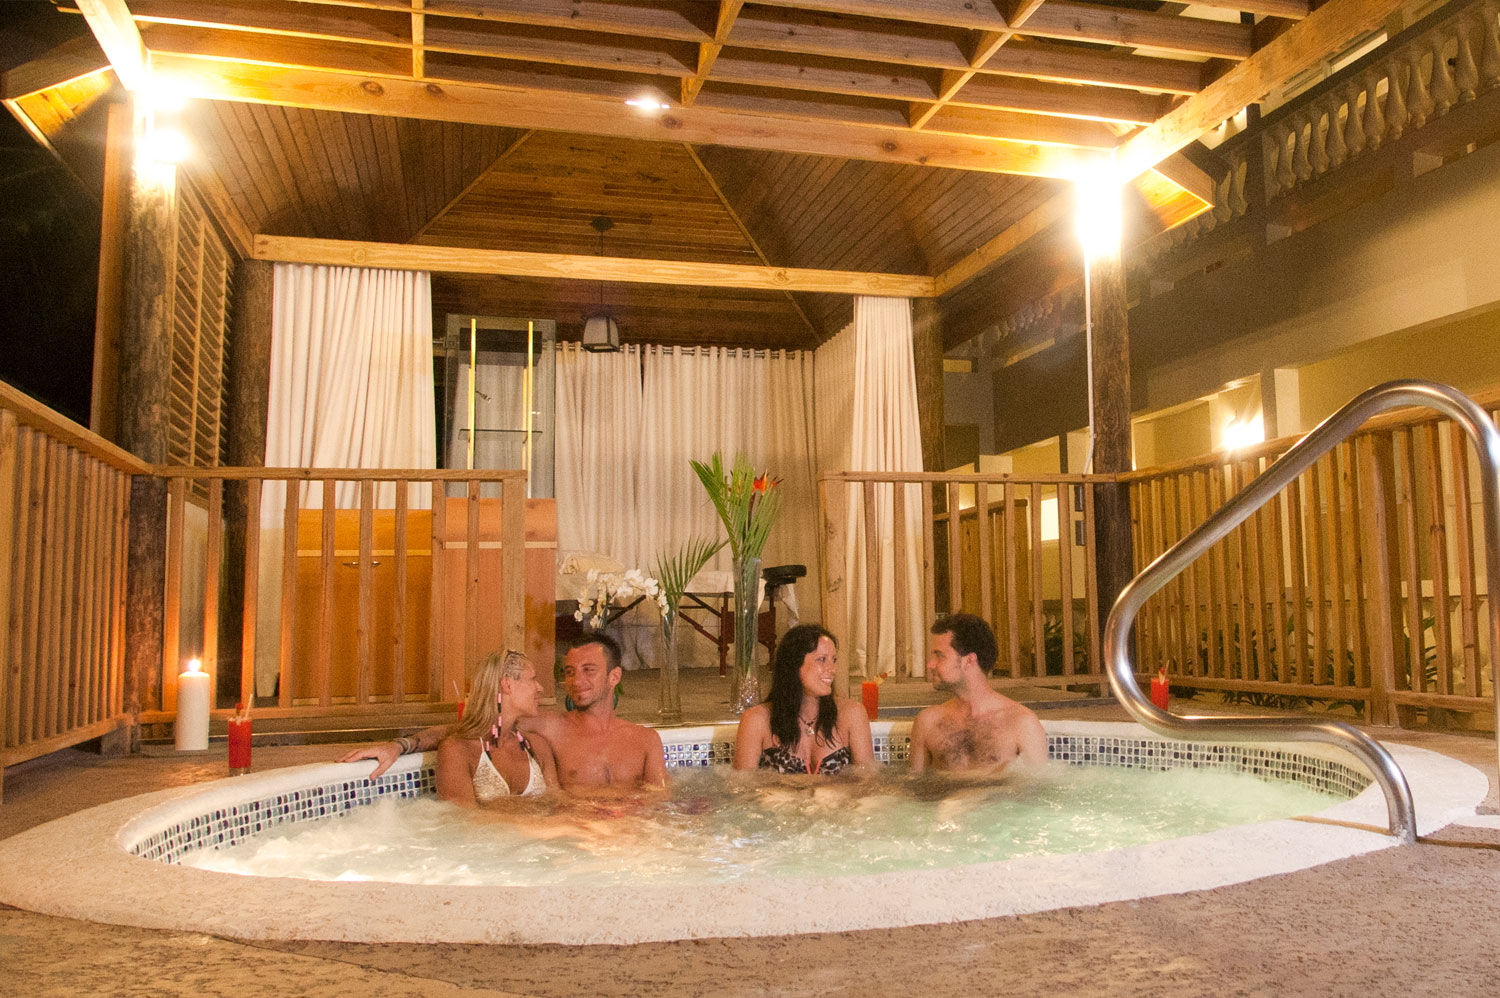 People in the Sauna Relaxing